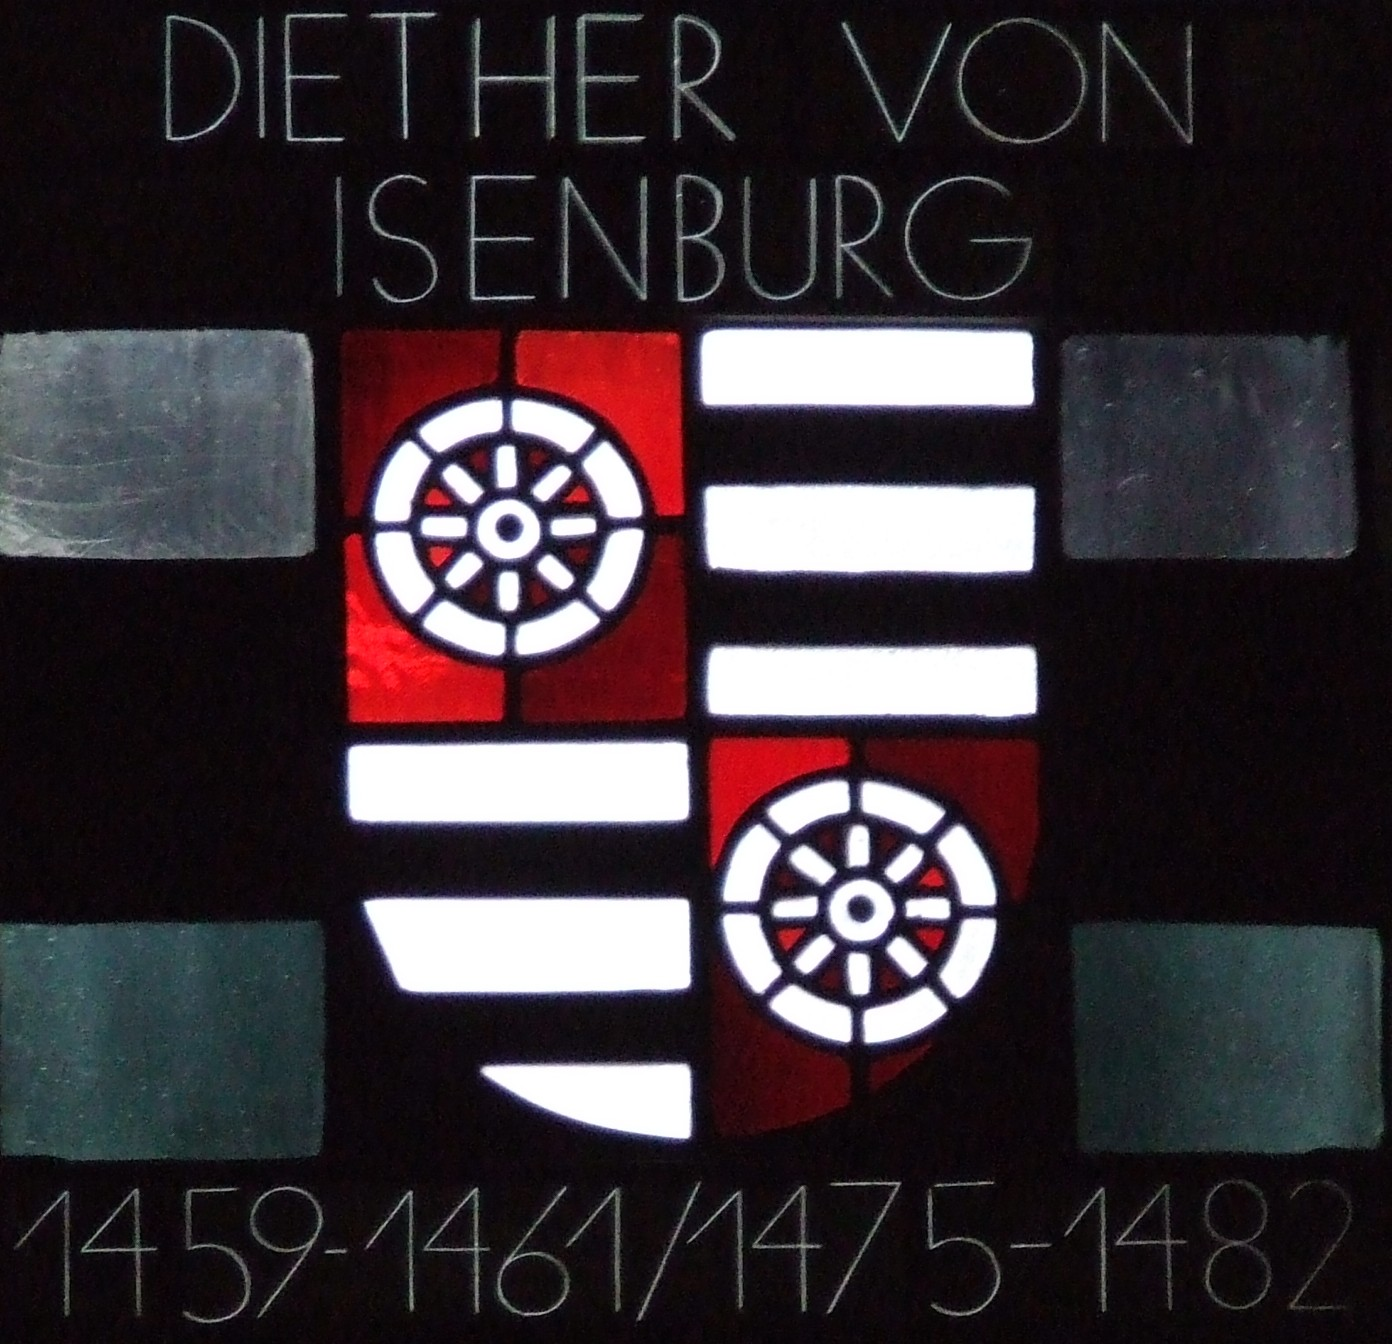 The coat of arms of Archbishop Diether von Isenberg, as depicted in the modern stain glass of the Mainz Cathedral.